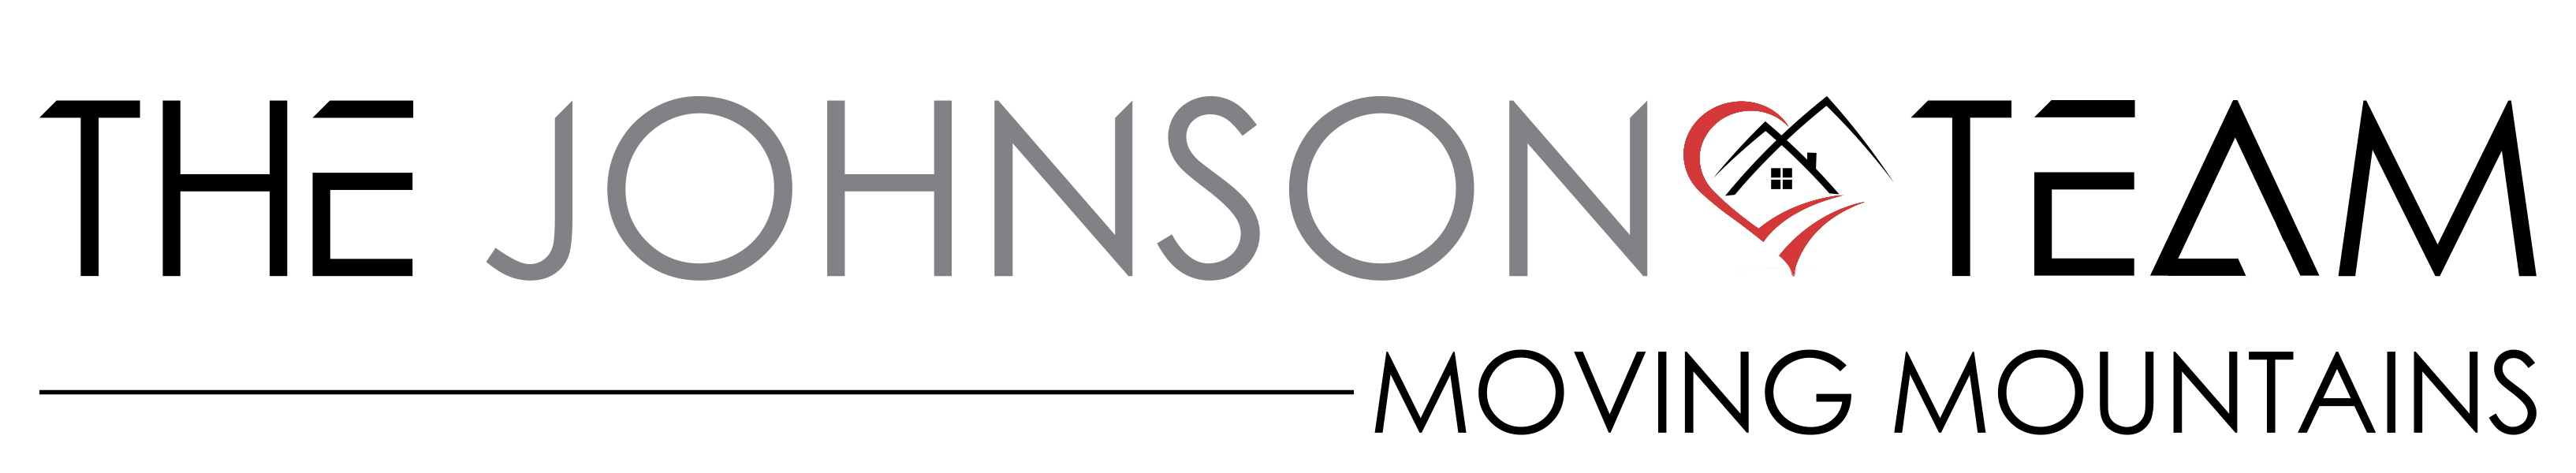 The Johnson Team logo